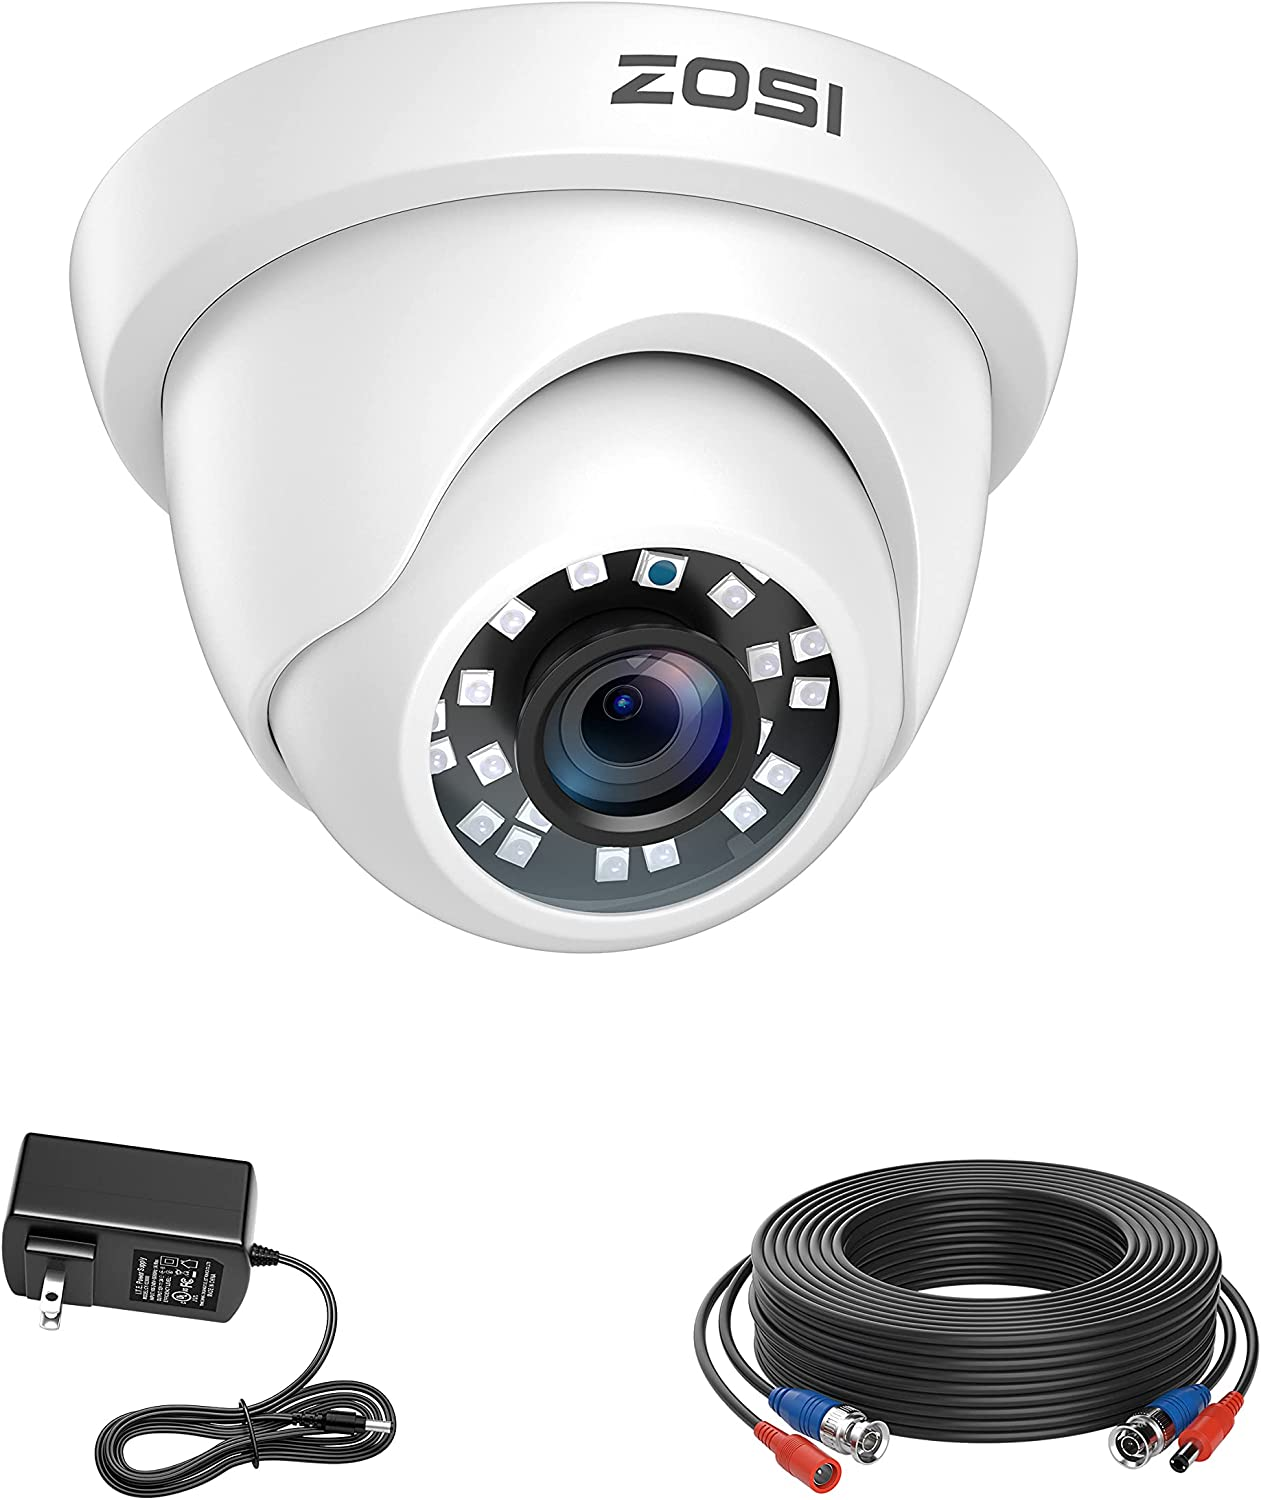 ZOSI 1080p HD 1920TVL Security Camera Outdoor Indoor (Hybrid 4-in-1 HD-CVI/TVI/AHD/960H Analog CVBS),80ft IR Night Vision,90° View Angle Weatherproof CCTV Dome Camera with Cable and Power Supply